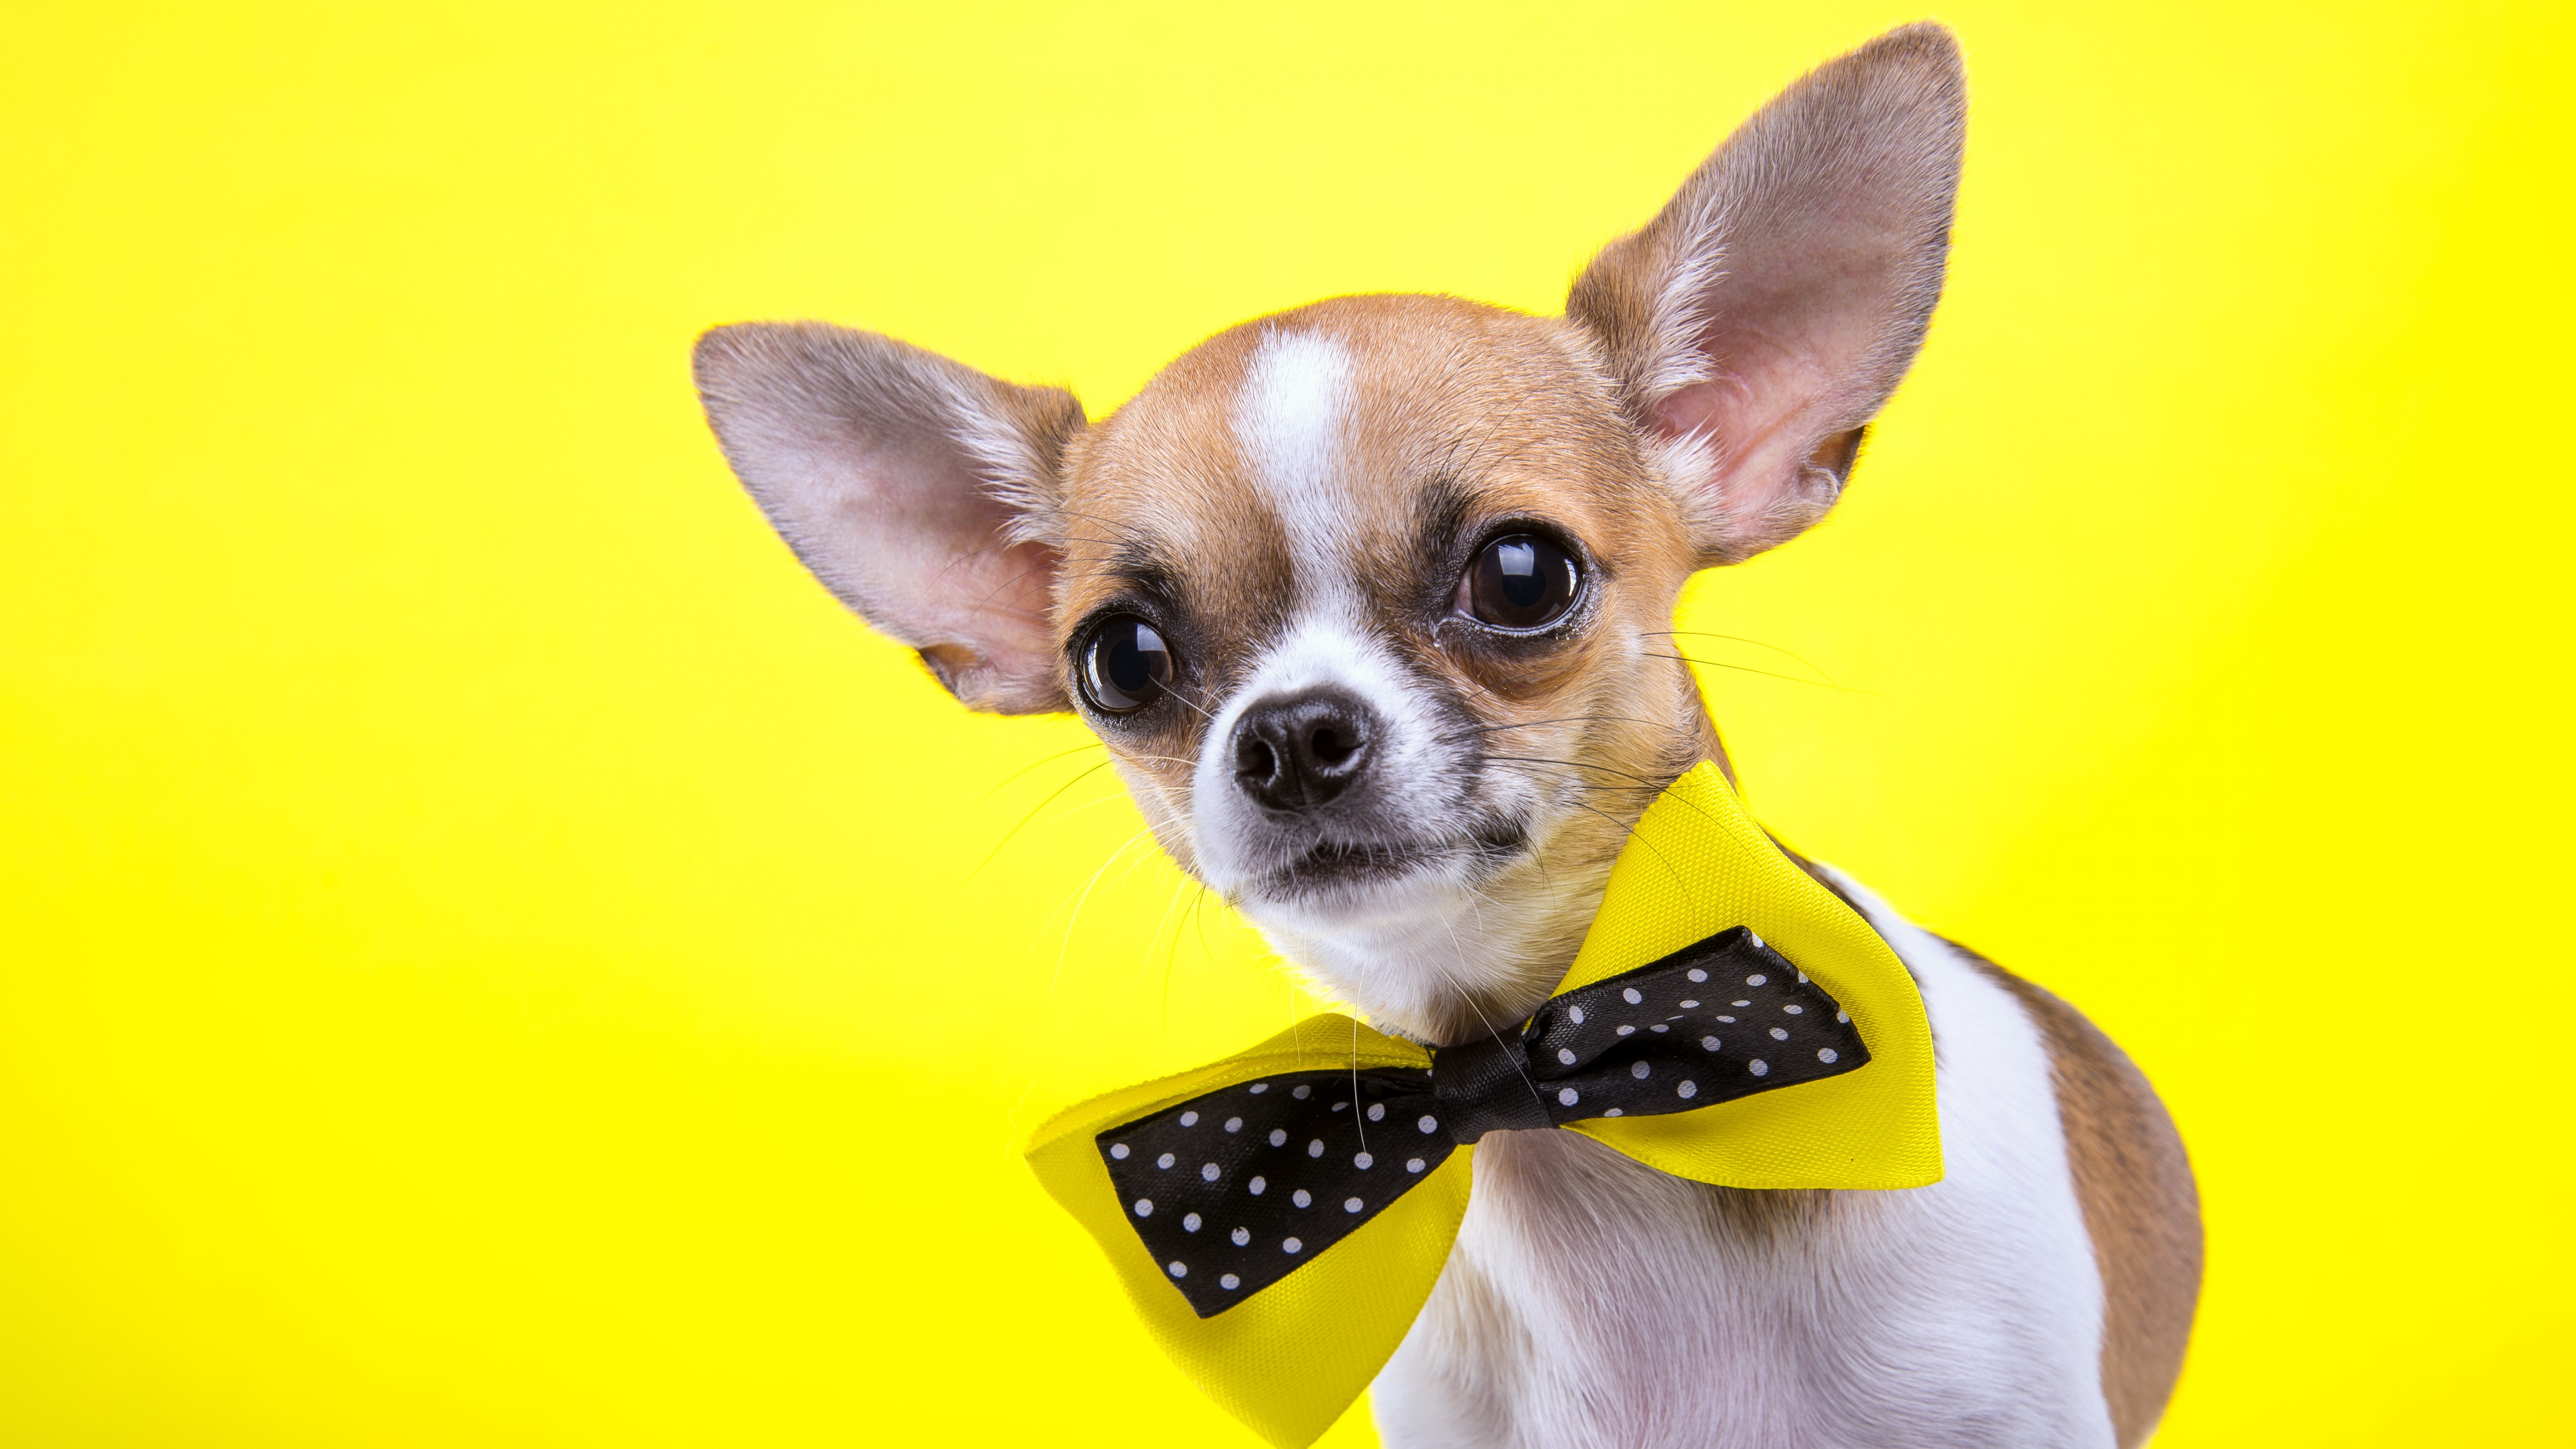 Beautiful Quotes Wallpaper For Facebook Wallpaper Chihuahua Dog Cute Animals Yellow 5k